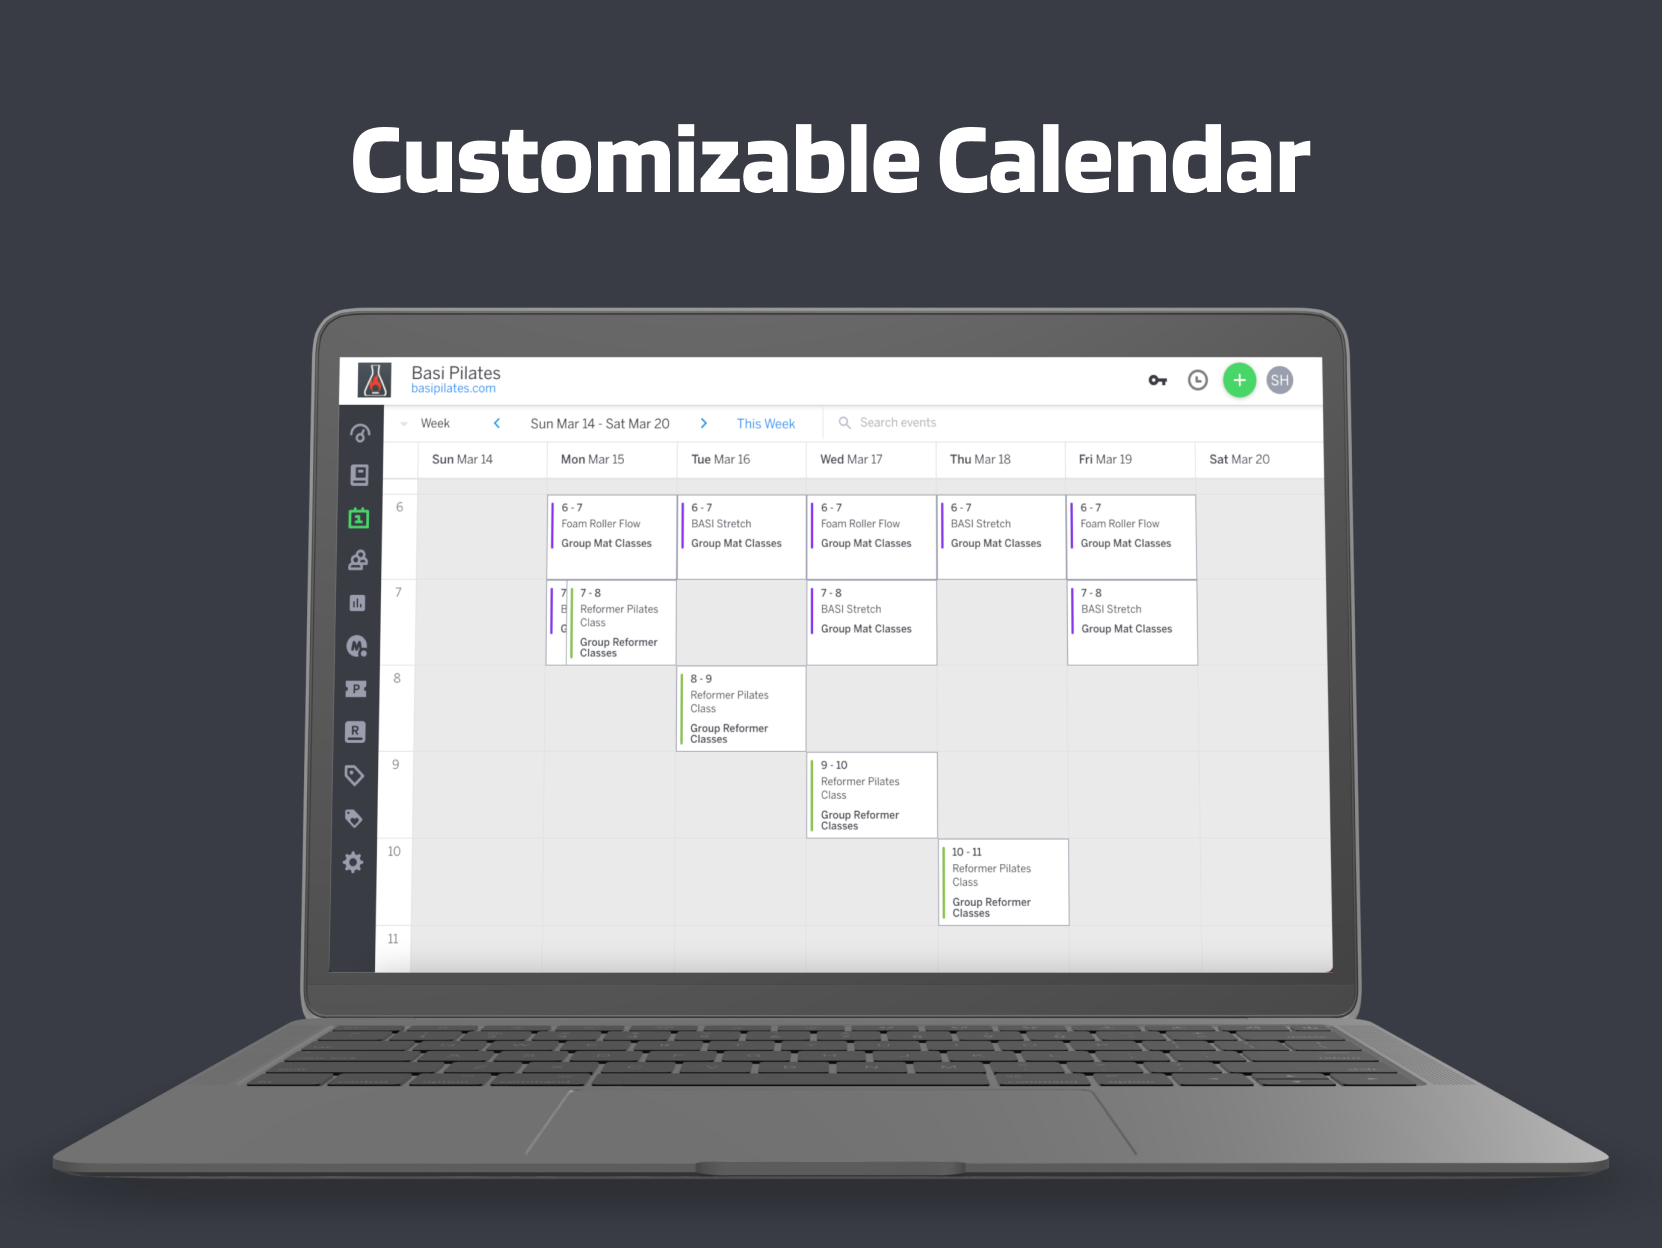 Upper Hand Software - Customizable calendar acts as your central hub, giving your staff one place to manage scheduling and availability, check-in clients, view upcoming session details, and transact.